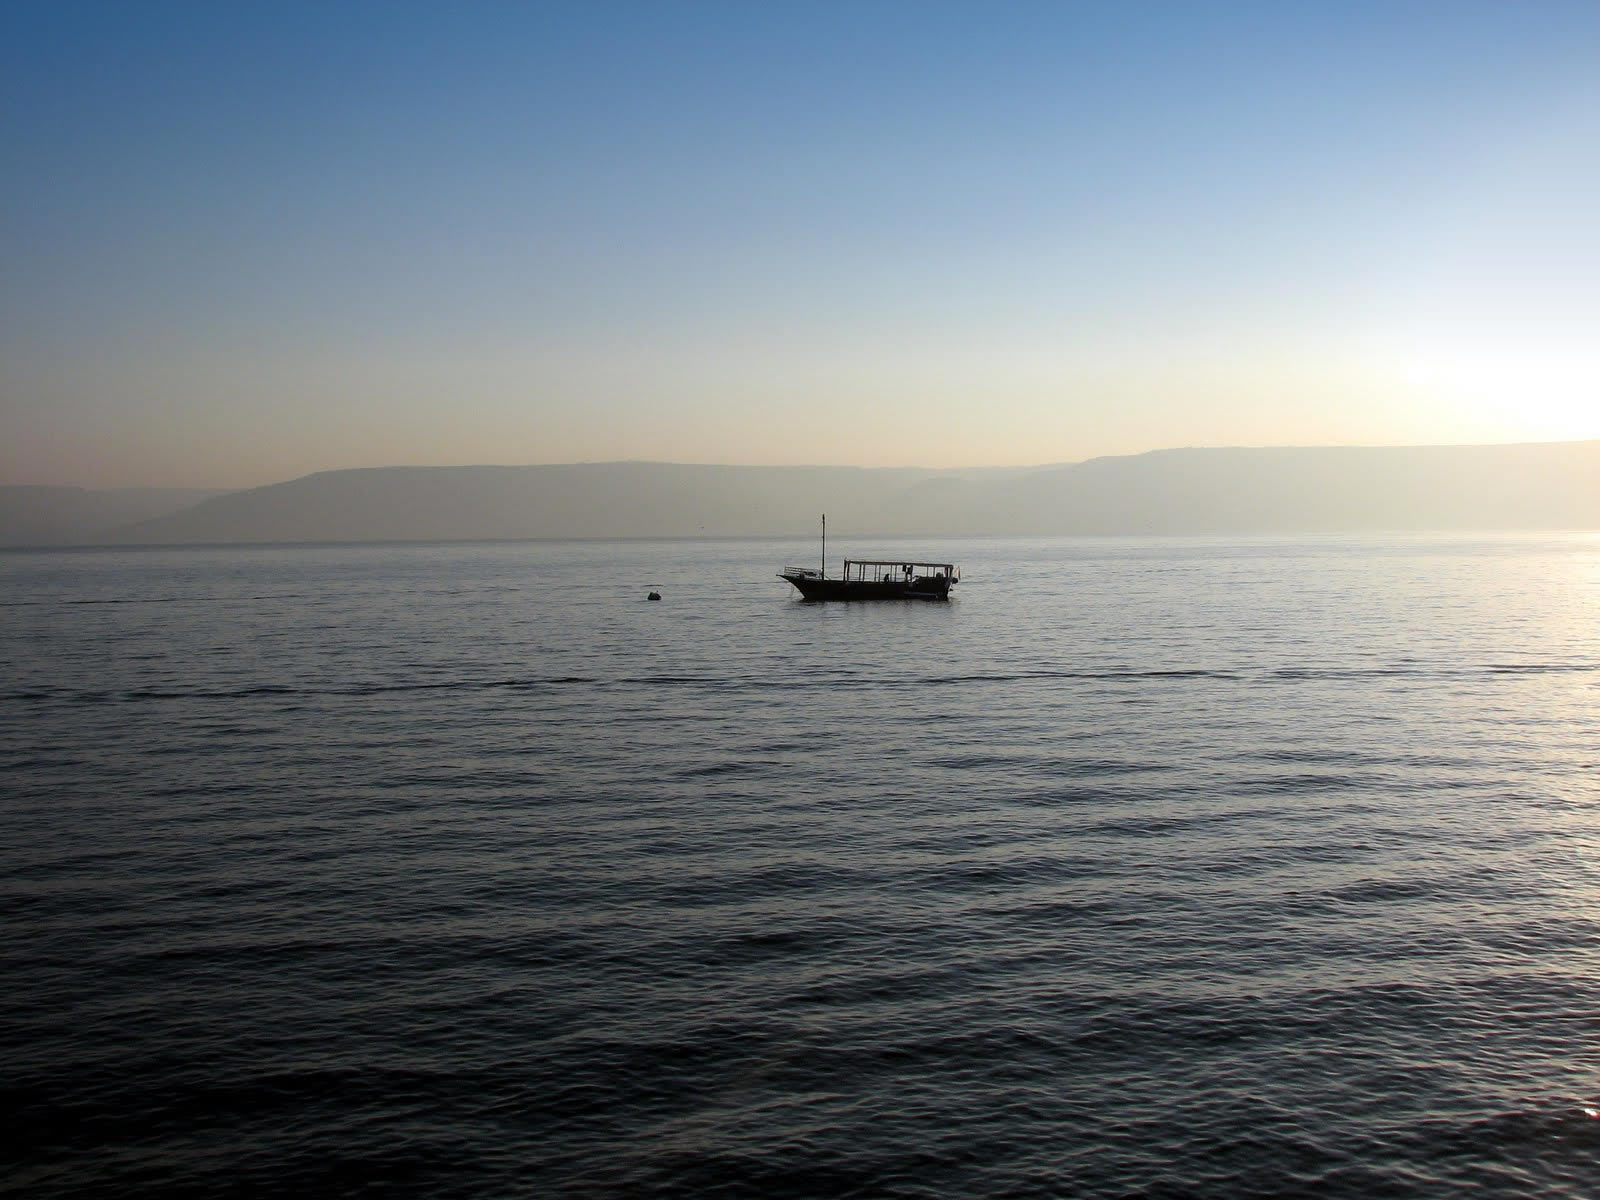 sea-of-galilee